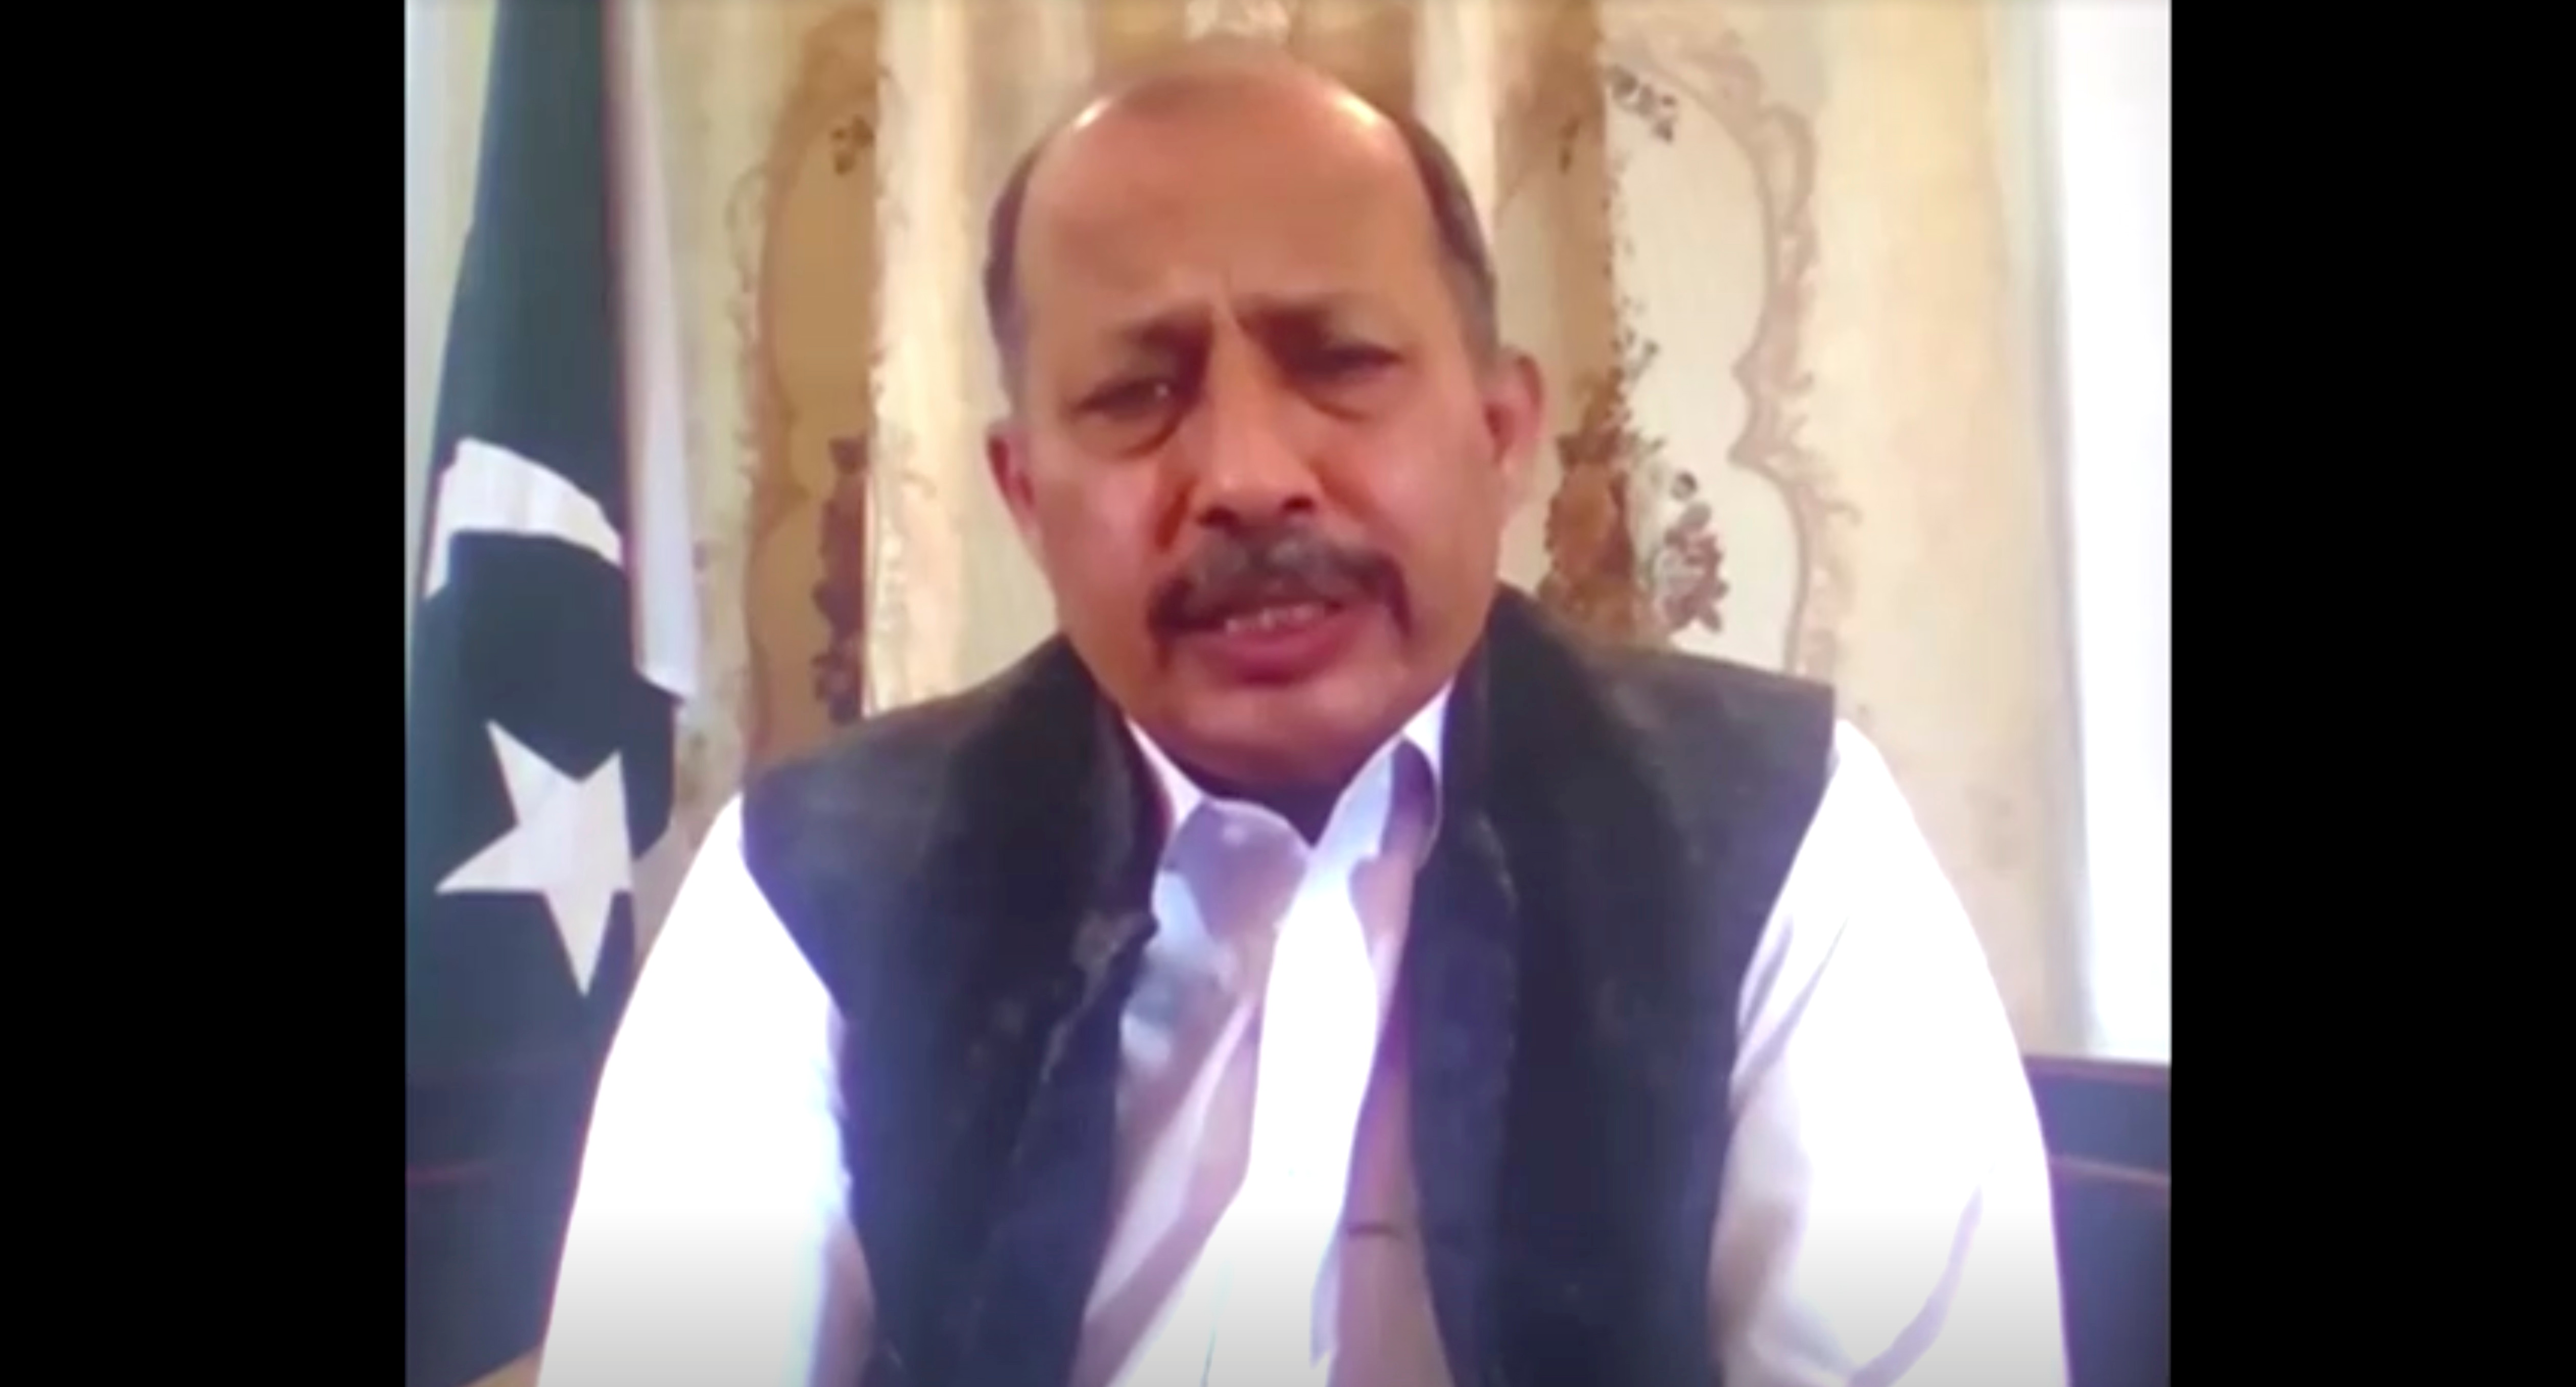 Pakistan's Ambassador to Afghanistan, Mansoor Ahmad Khan, speaks during a discussion, in this screen grab taken from a video, in Kabul, Afghanistan September 27, 2021. REUTERS TV via REUTERS